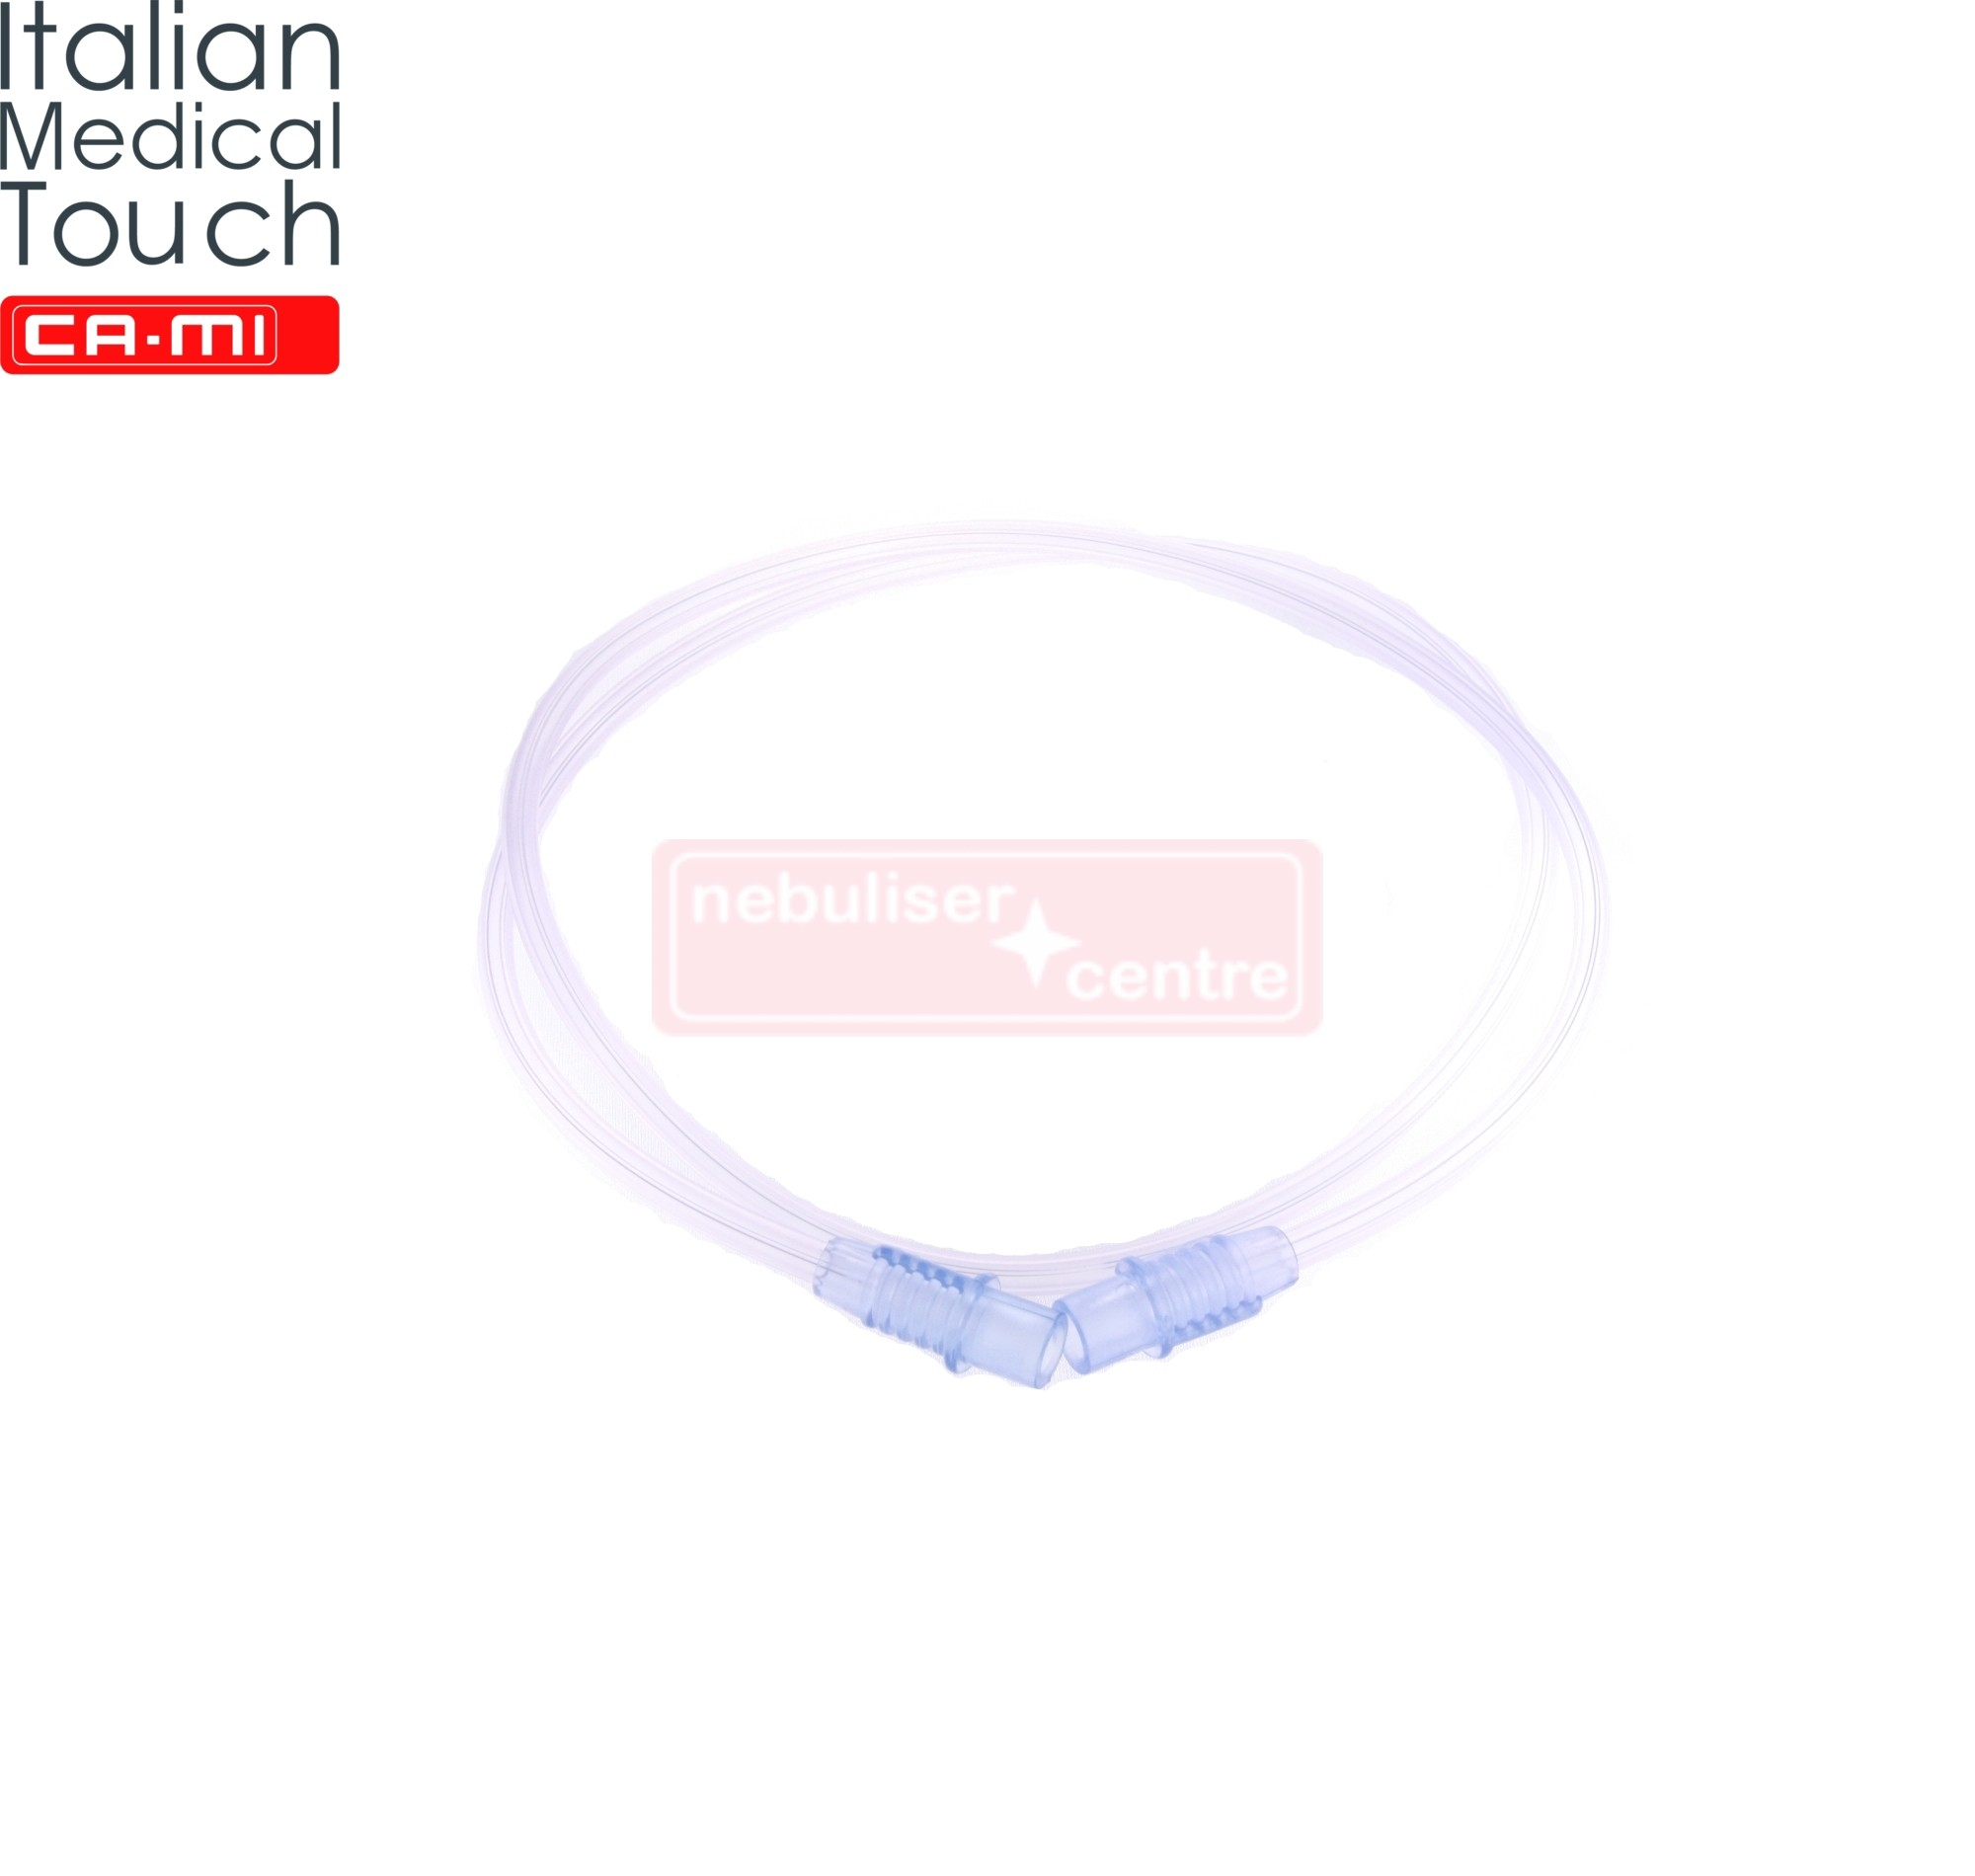 Nebulizer tubing for CA-MI HiFlo nebulizers